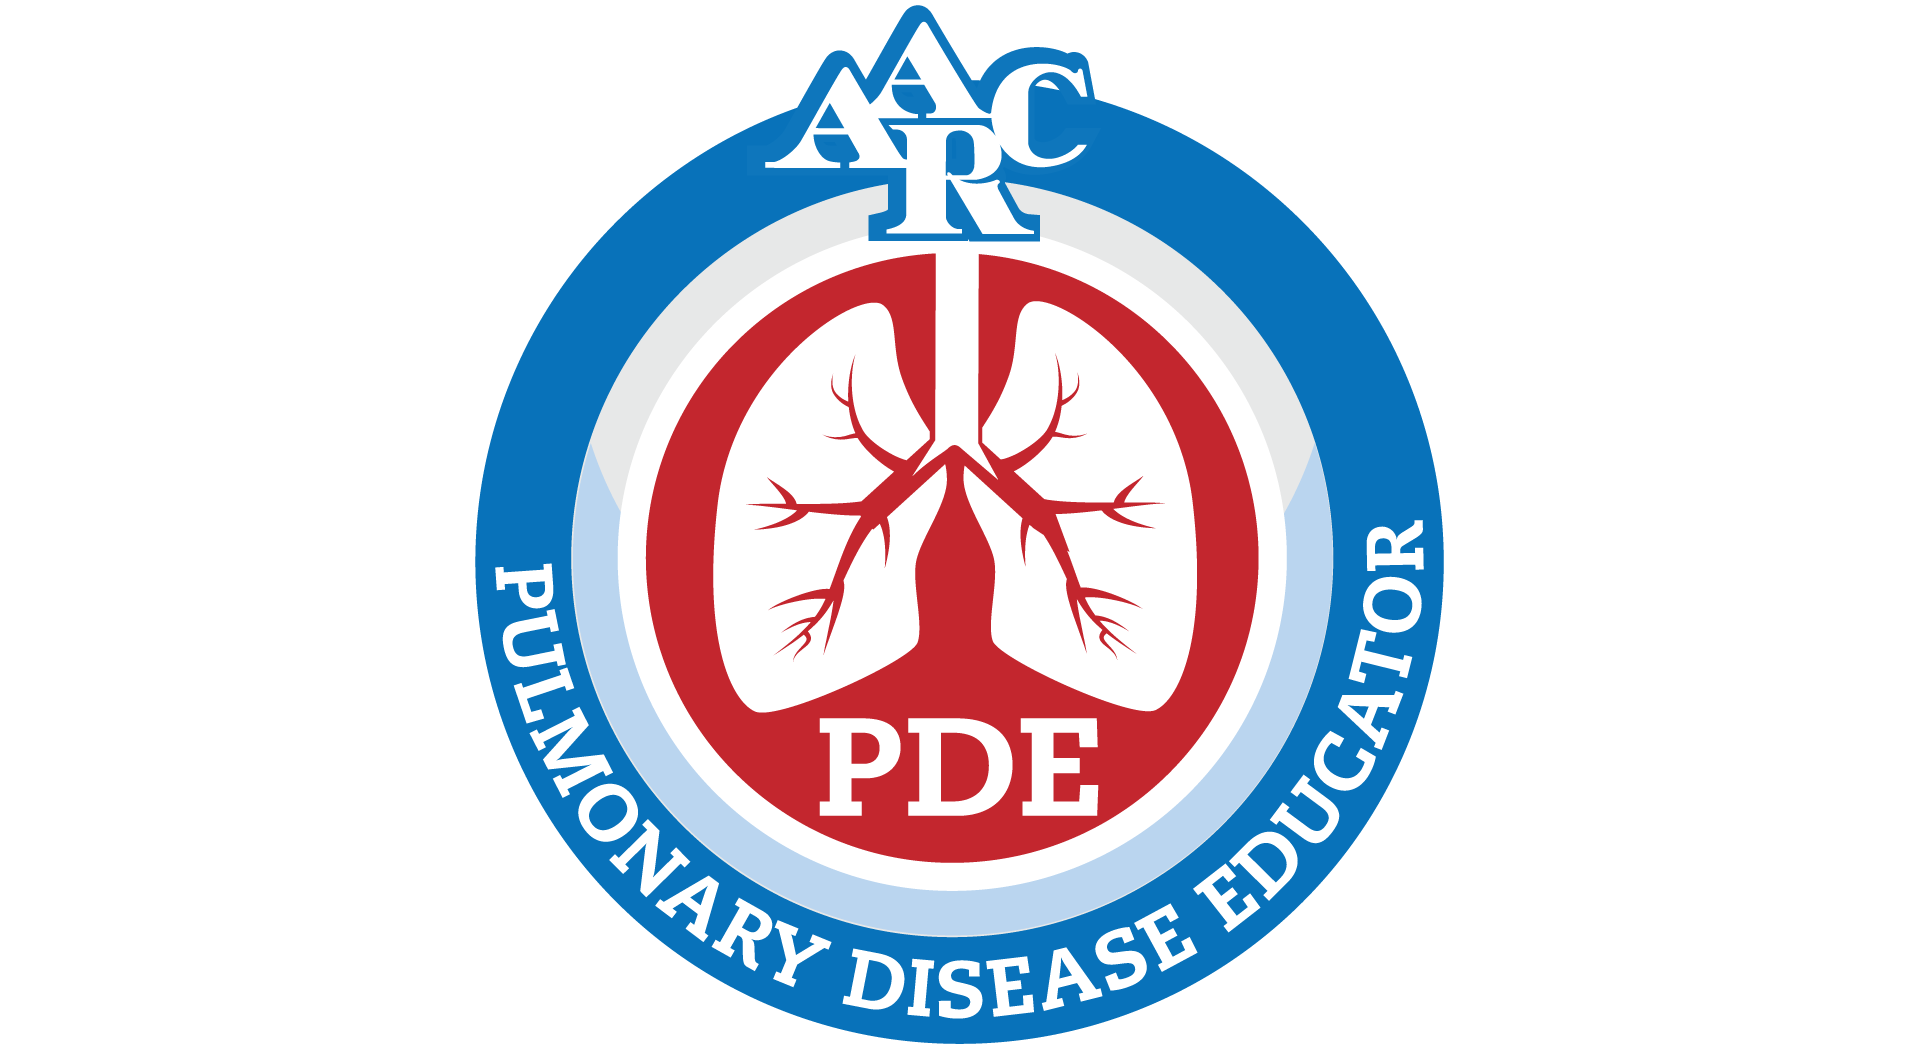 2017 pulmonary disease educator aarc online learning by aarc this course is approved by the ohio nurses association through 1282018 ona 20423 the ohio nurses association is accredited as an approver of buycottarizona